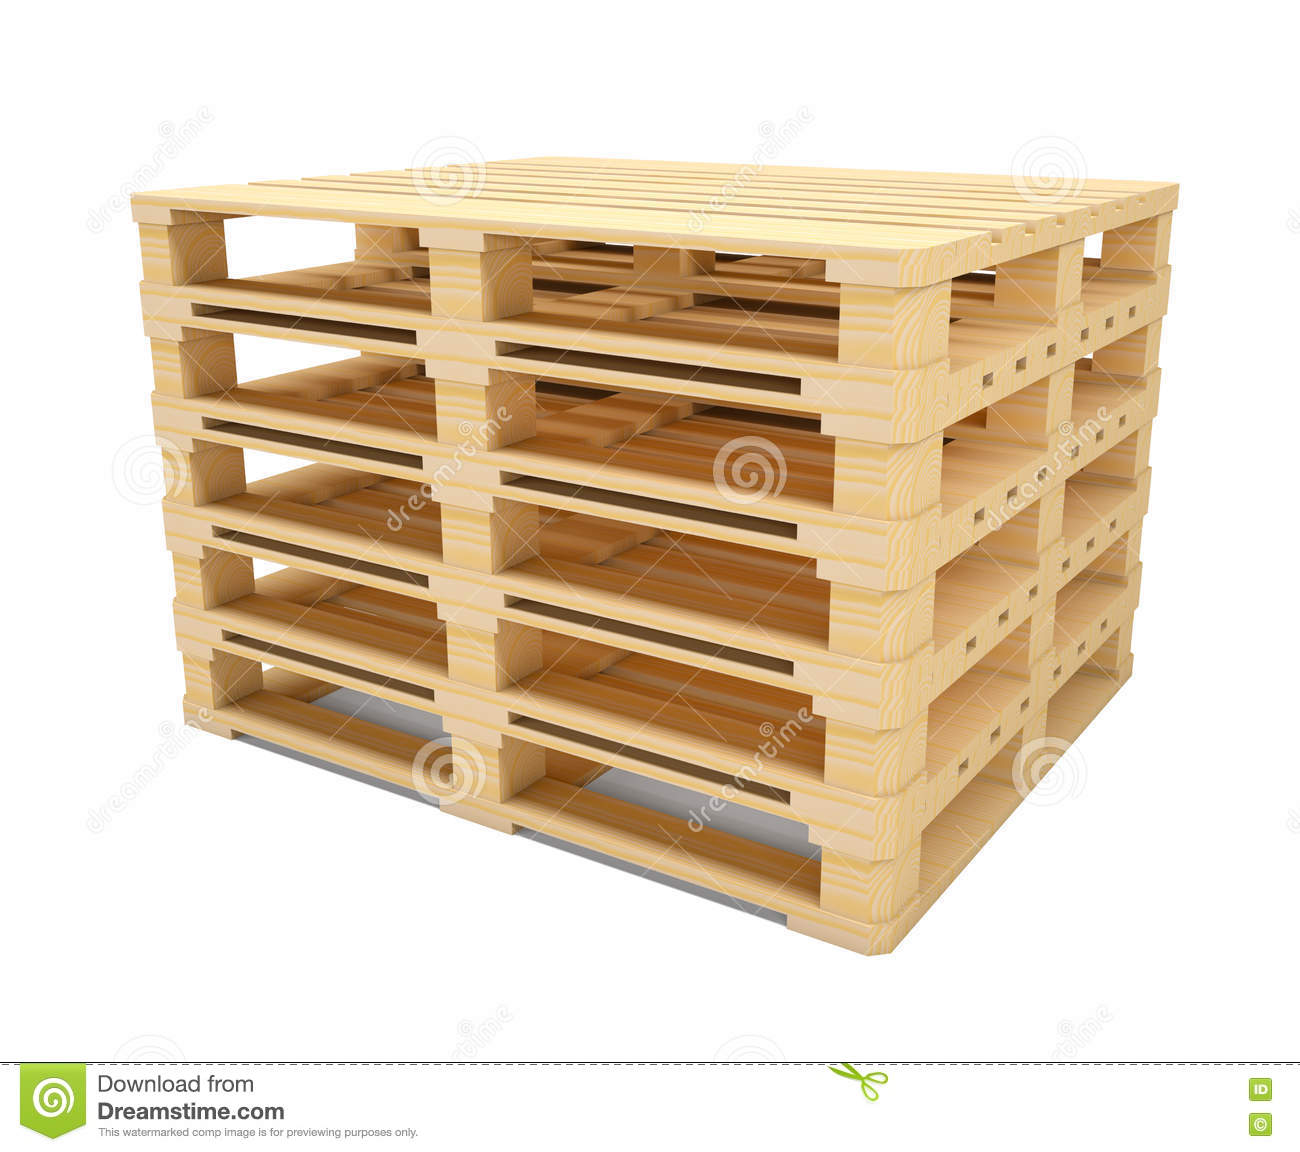 wooden shipping pallet in standard dimensions royalty free stock photography cartoondealer. Black Bedroom Furniture Sets. Home Design Ideas